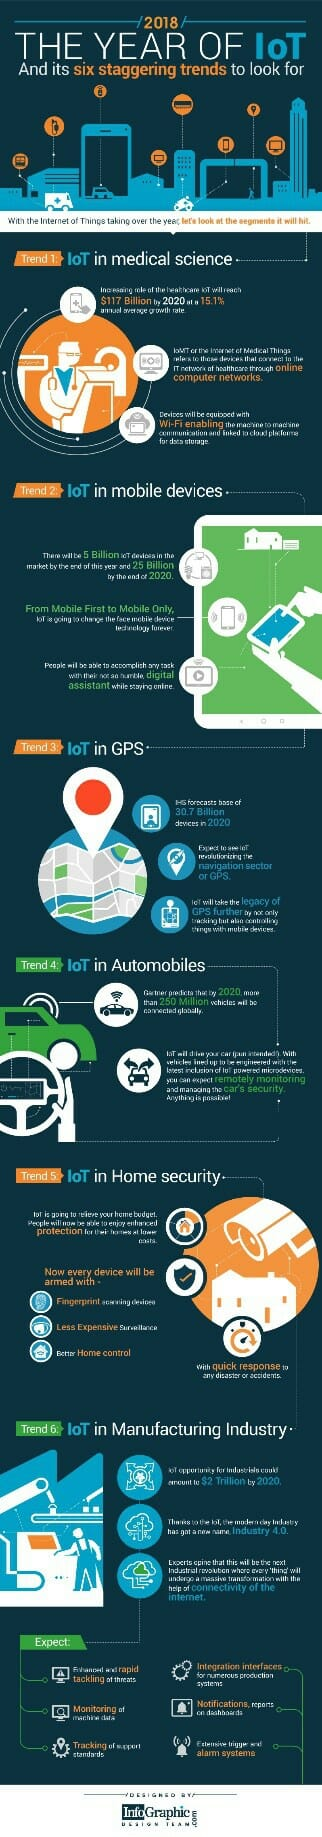 6 Trends for Internet of Things (IoT) in 2018 - Infographic - Cubility